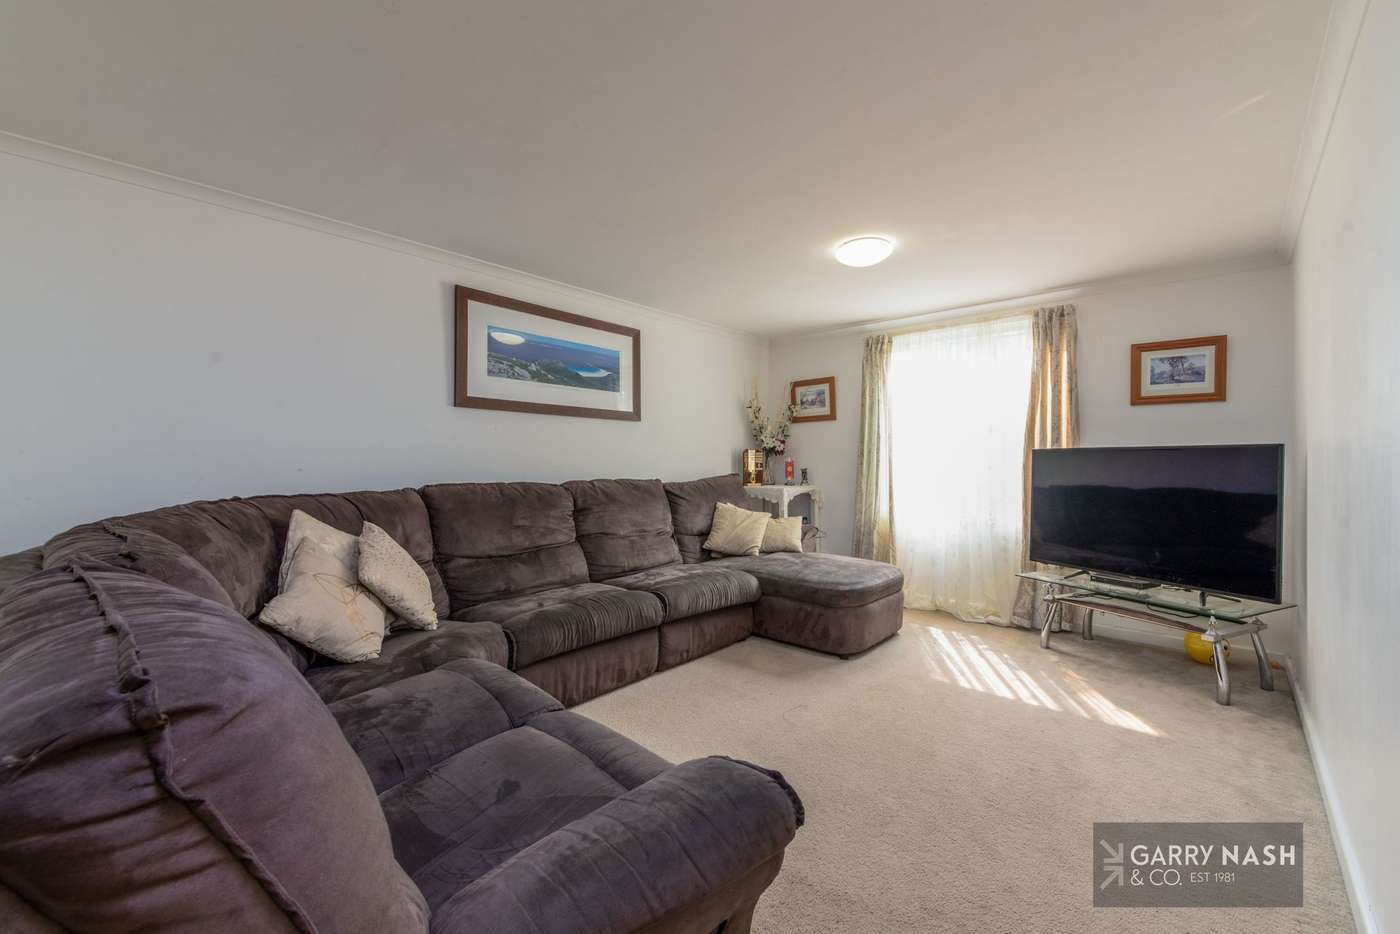 Sixth view of Homely house listing, 24 Batchelor Crescent, Wangaratta VIC 3677